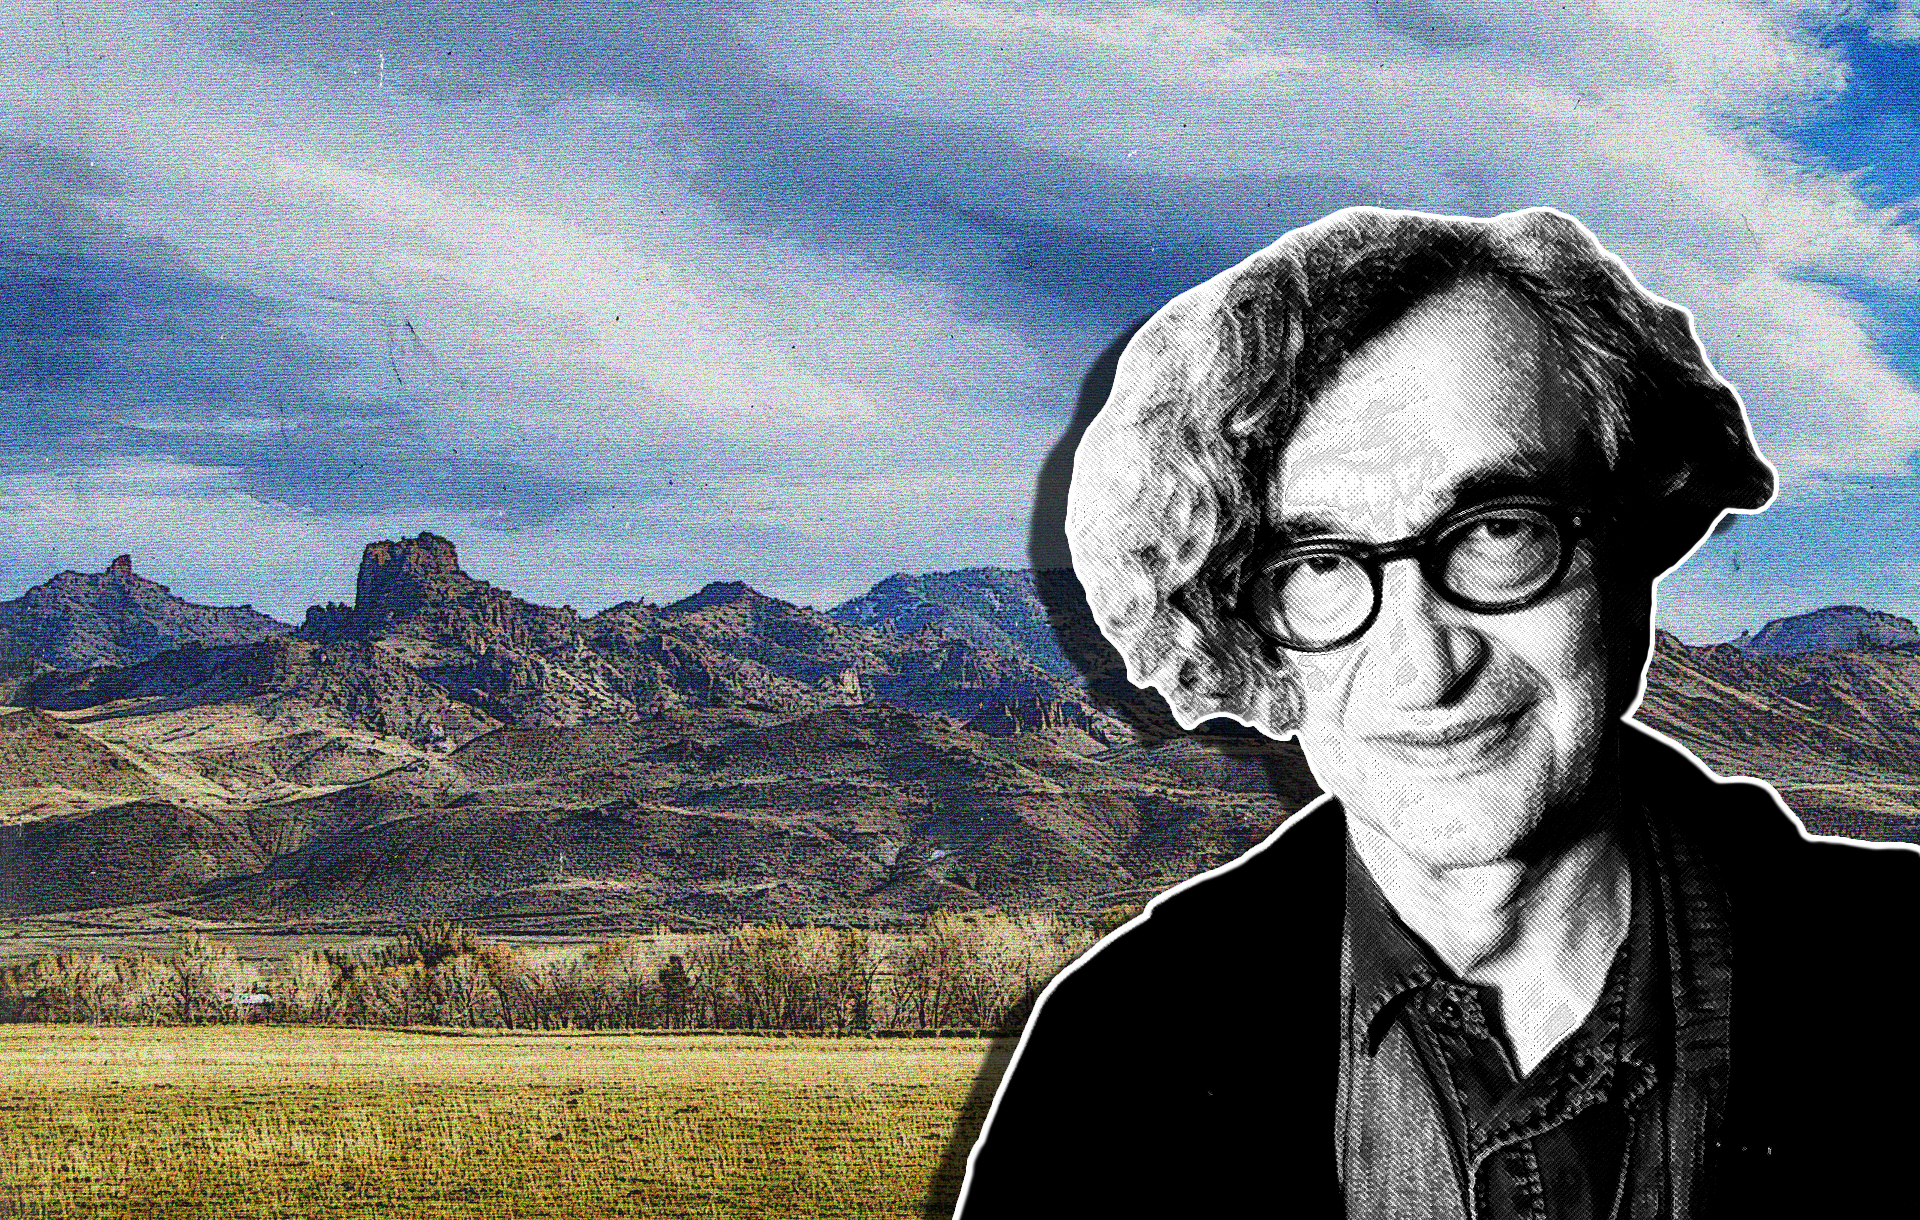 Wim Wenders – A Portrait Of The Most American Member Of The New German Cinema   Features   LIVING LIFE FEARLESS